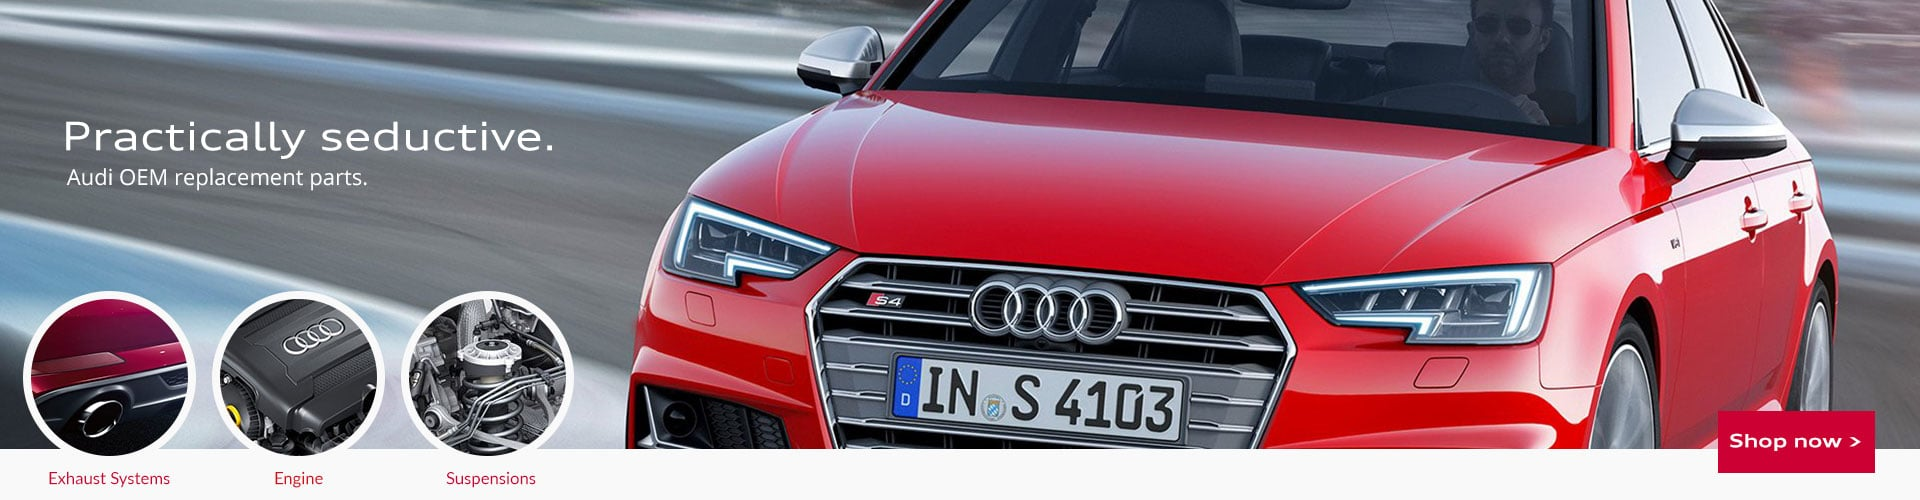 My Audi Parts Now Banner 1